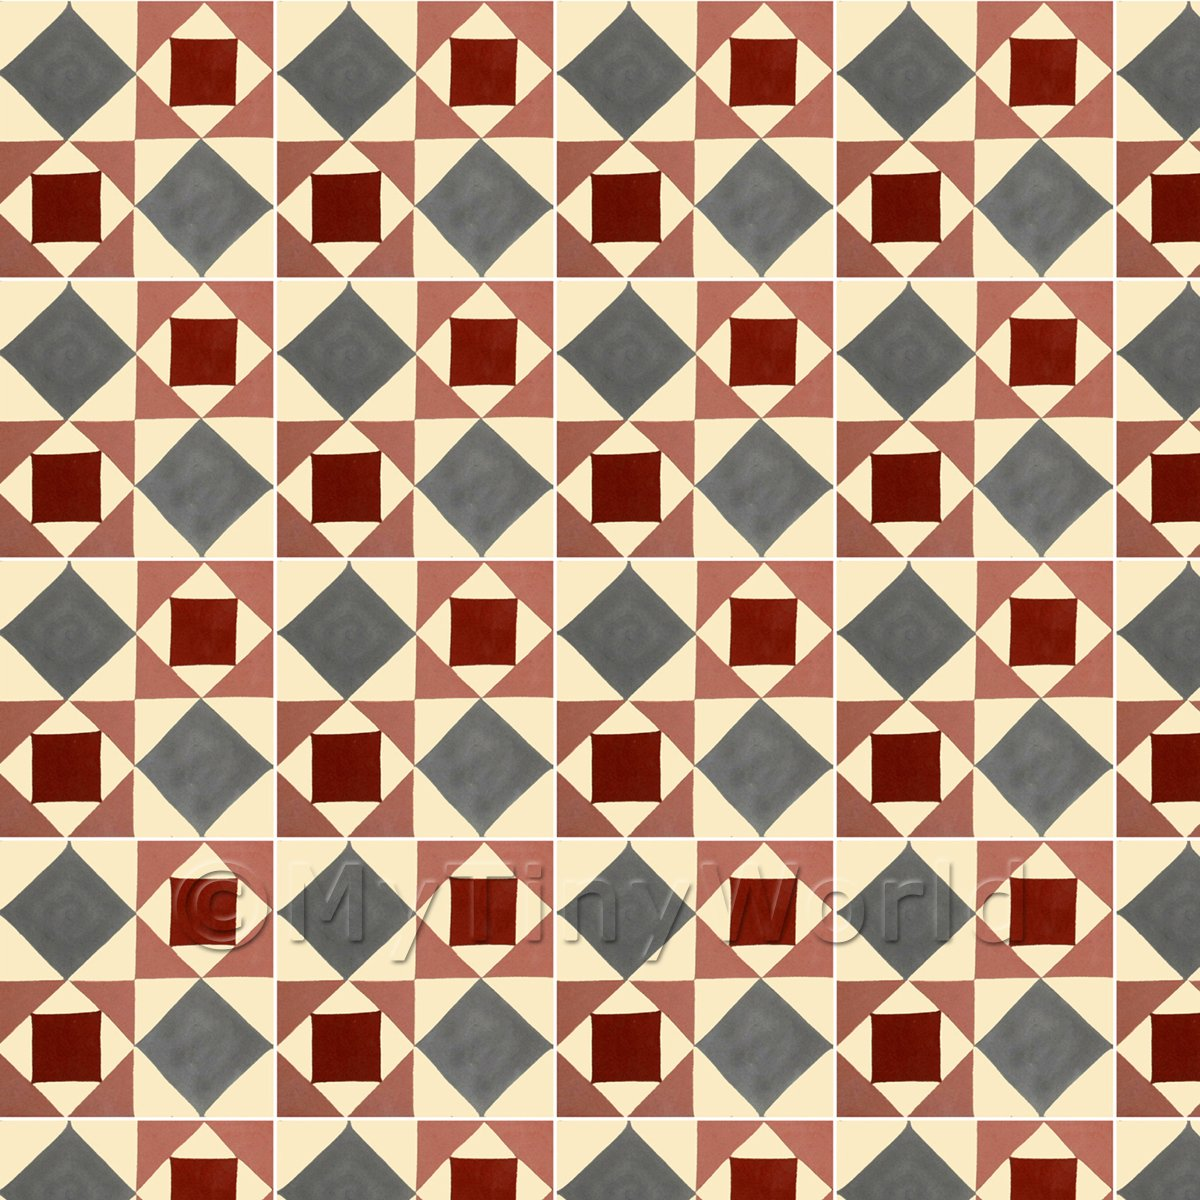 1:12th Large Red And Grey Geometric Design Tile Sheet With White Grout